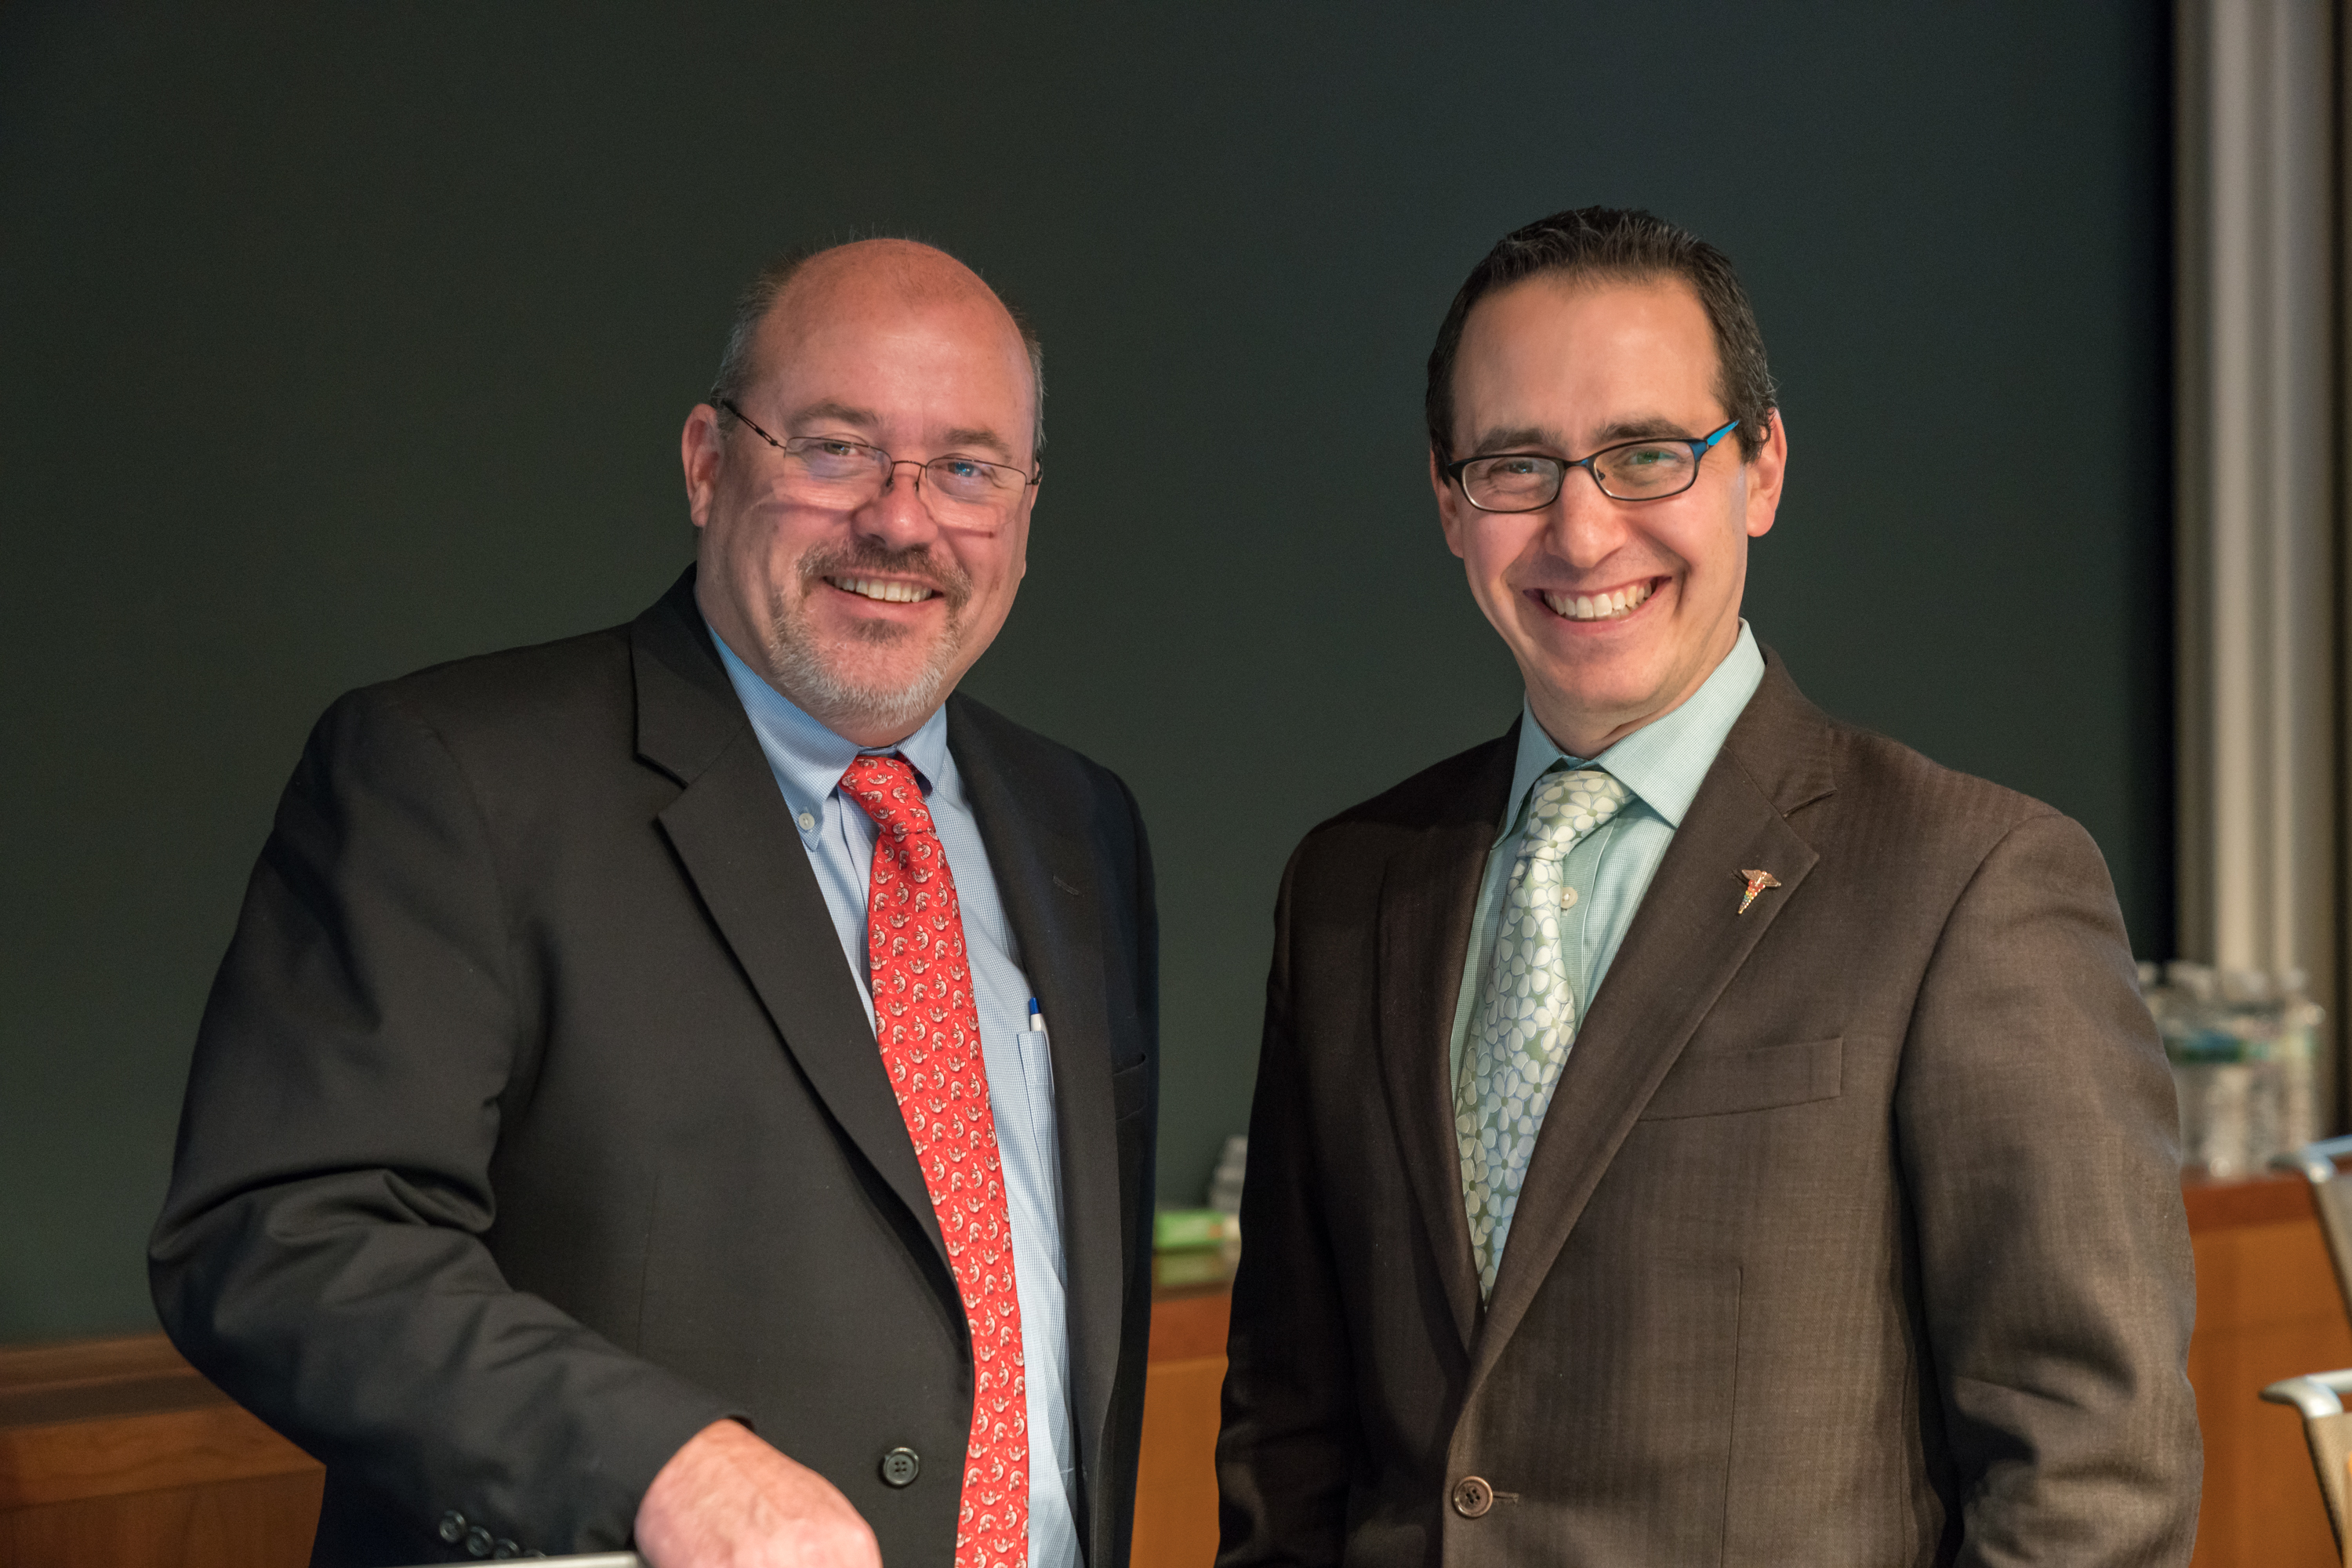 Caption: Frank MacMillan Jr., MD, FACG, vice speaker (L), David Rosman, MD, MBA, speaker (R)